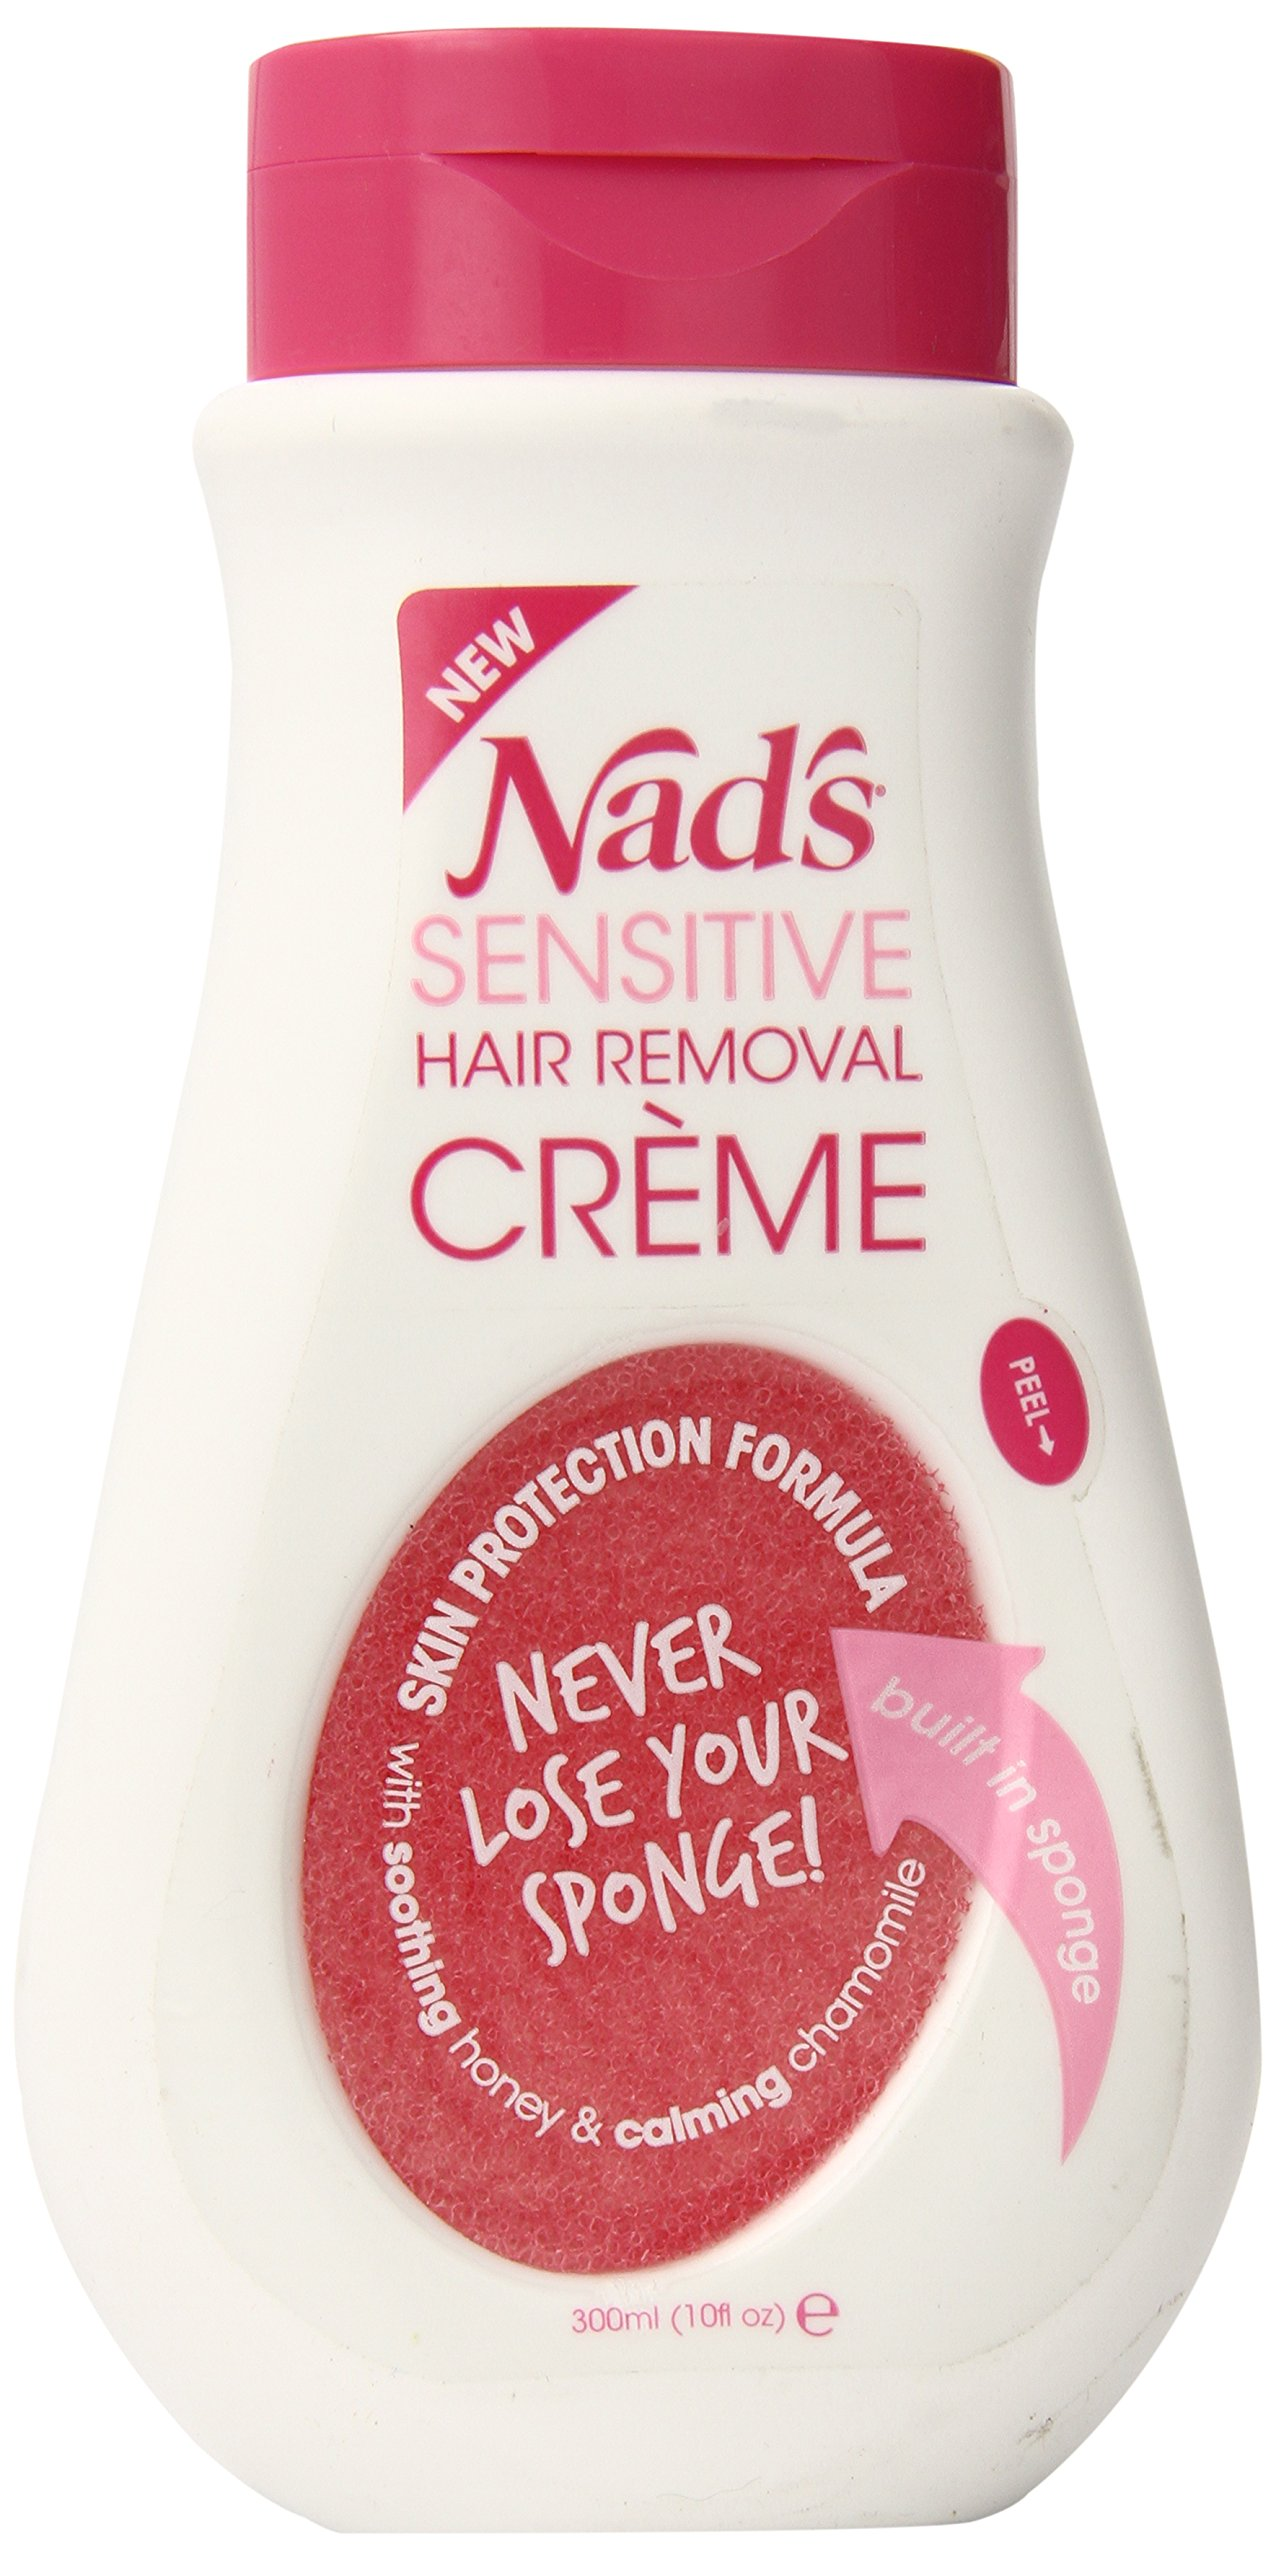 Nads 300ml Sensitive Hair Removal Creme